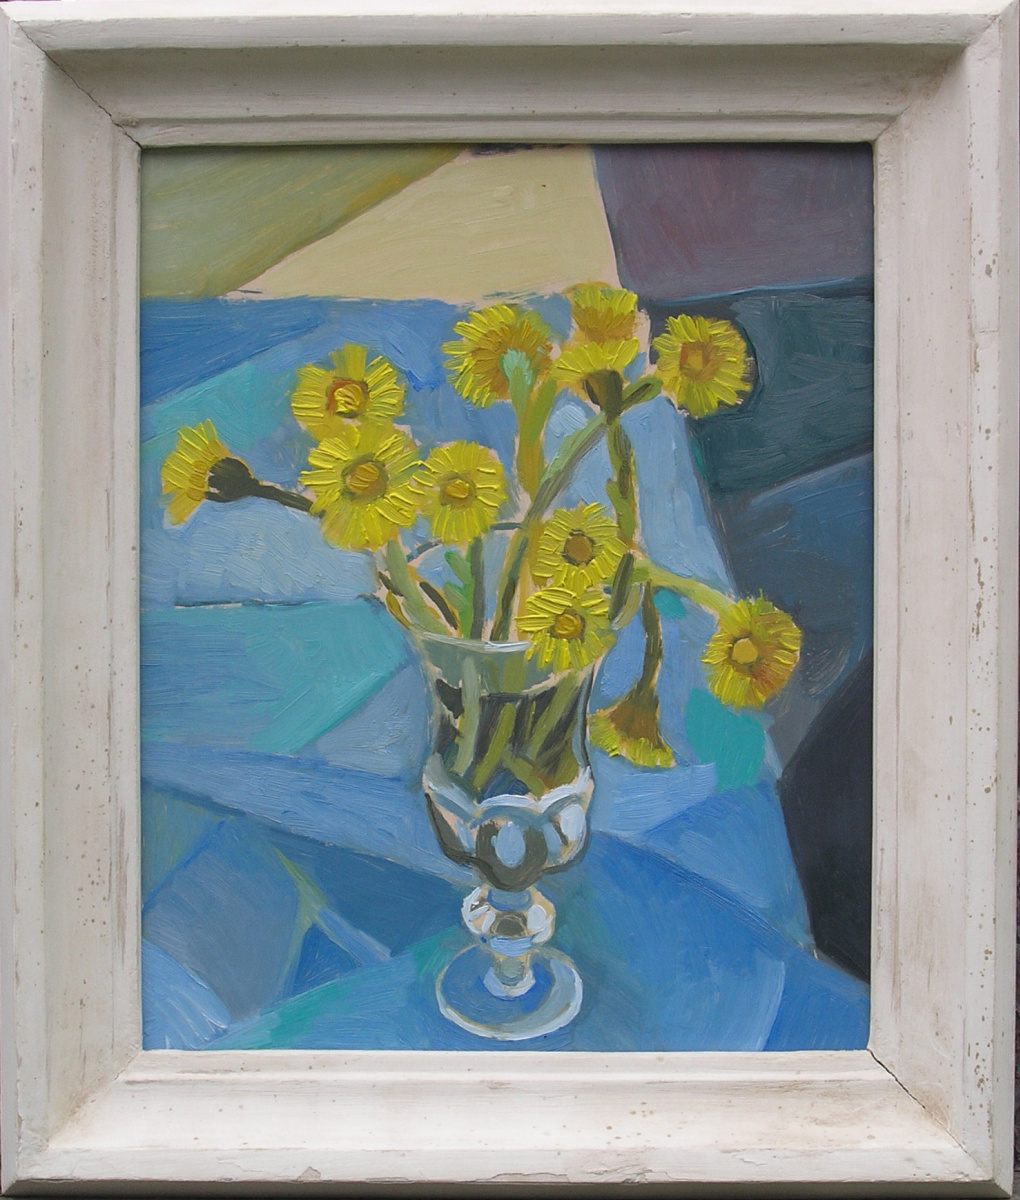 Stas Volostnych. Flowers in a vase